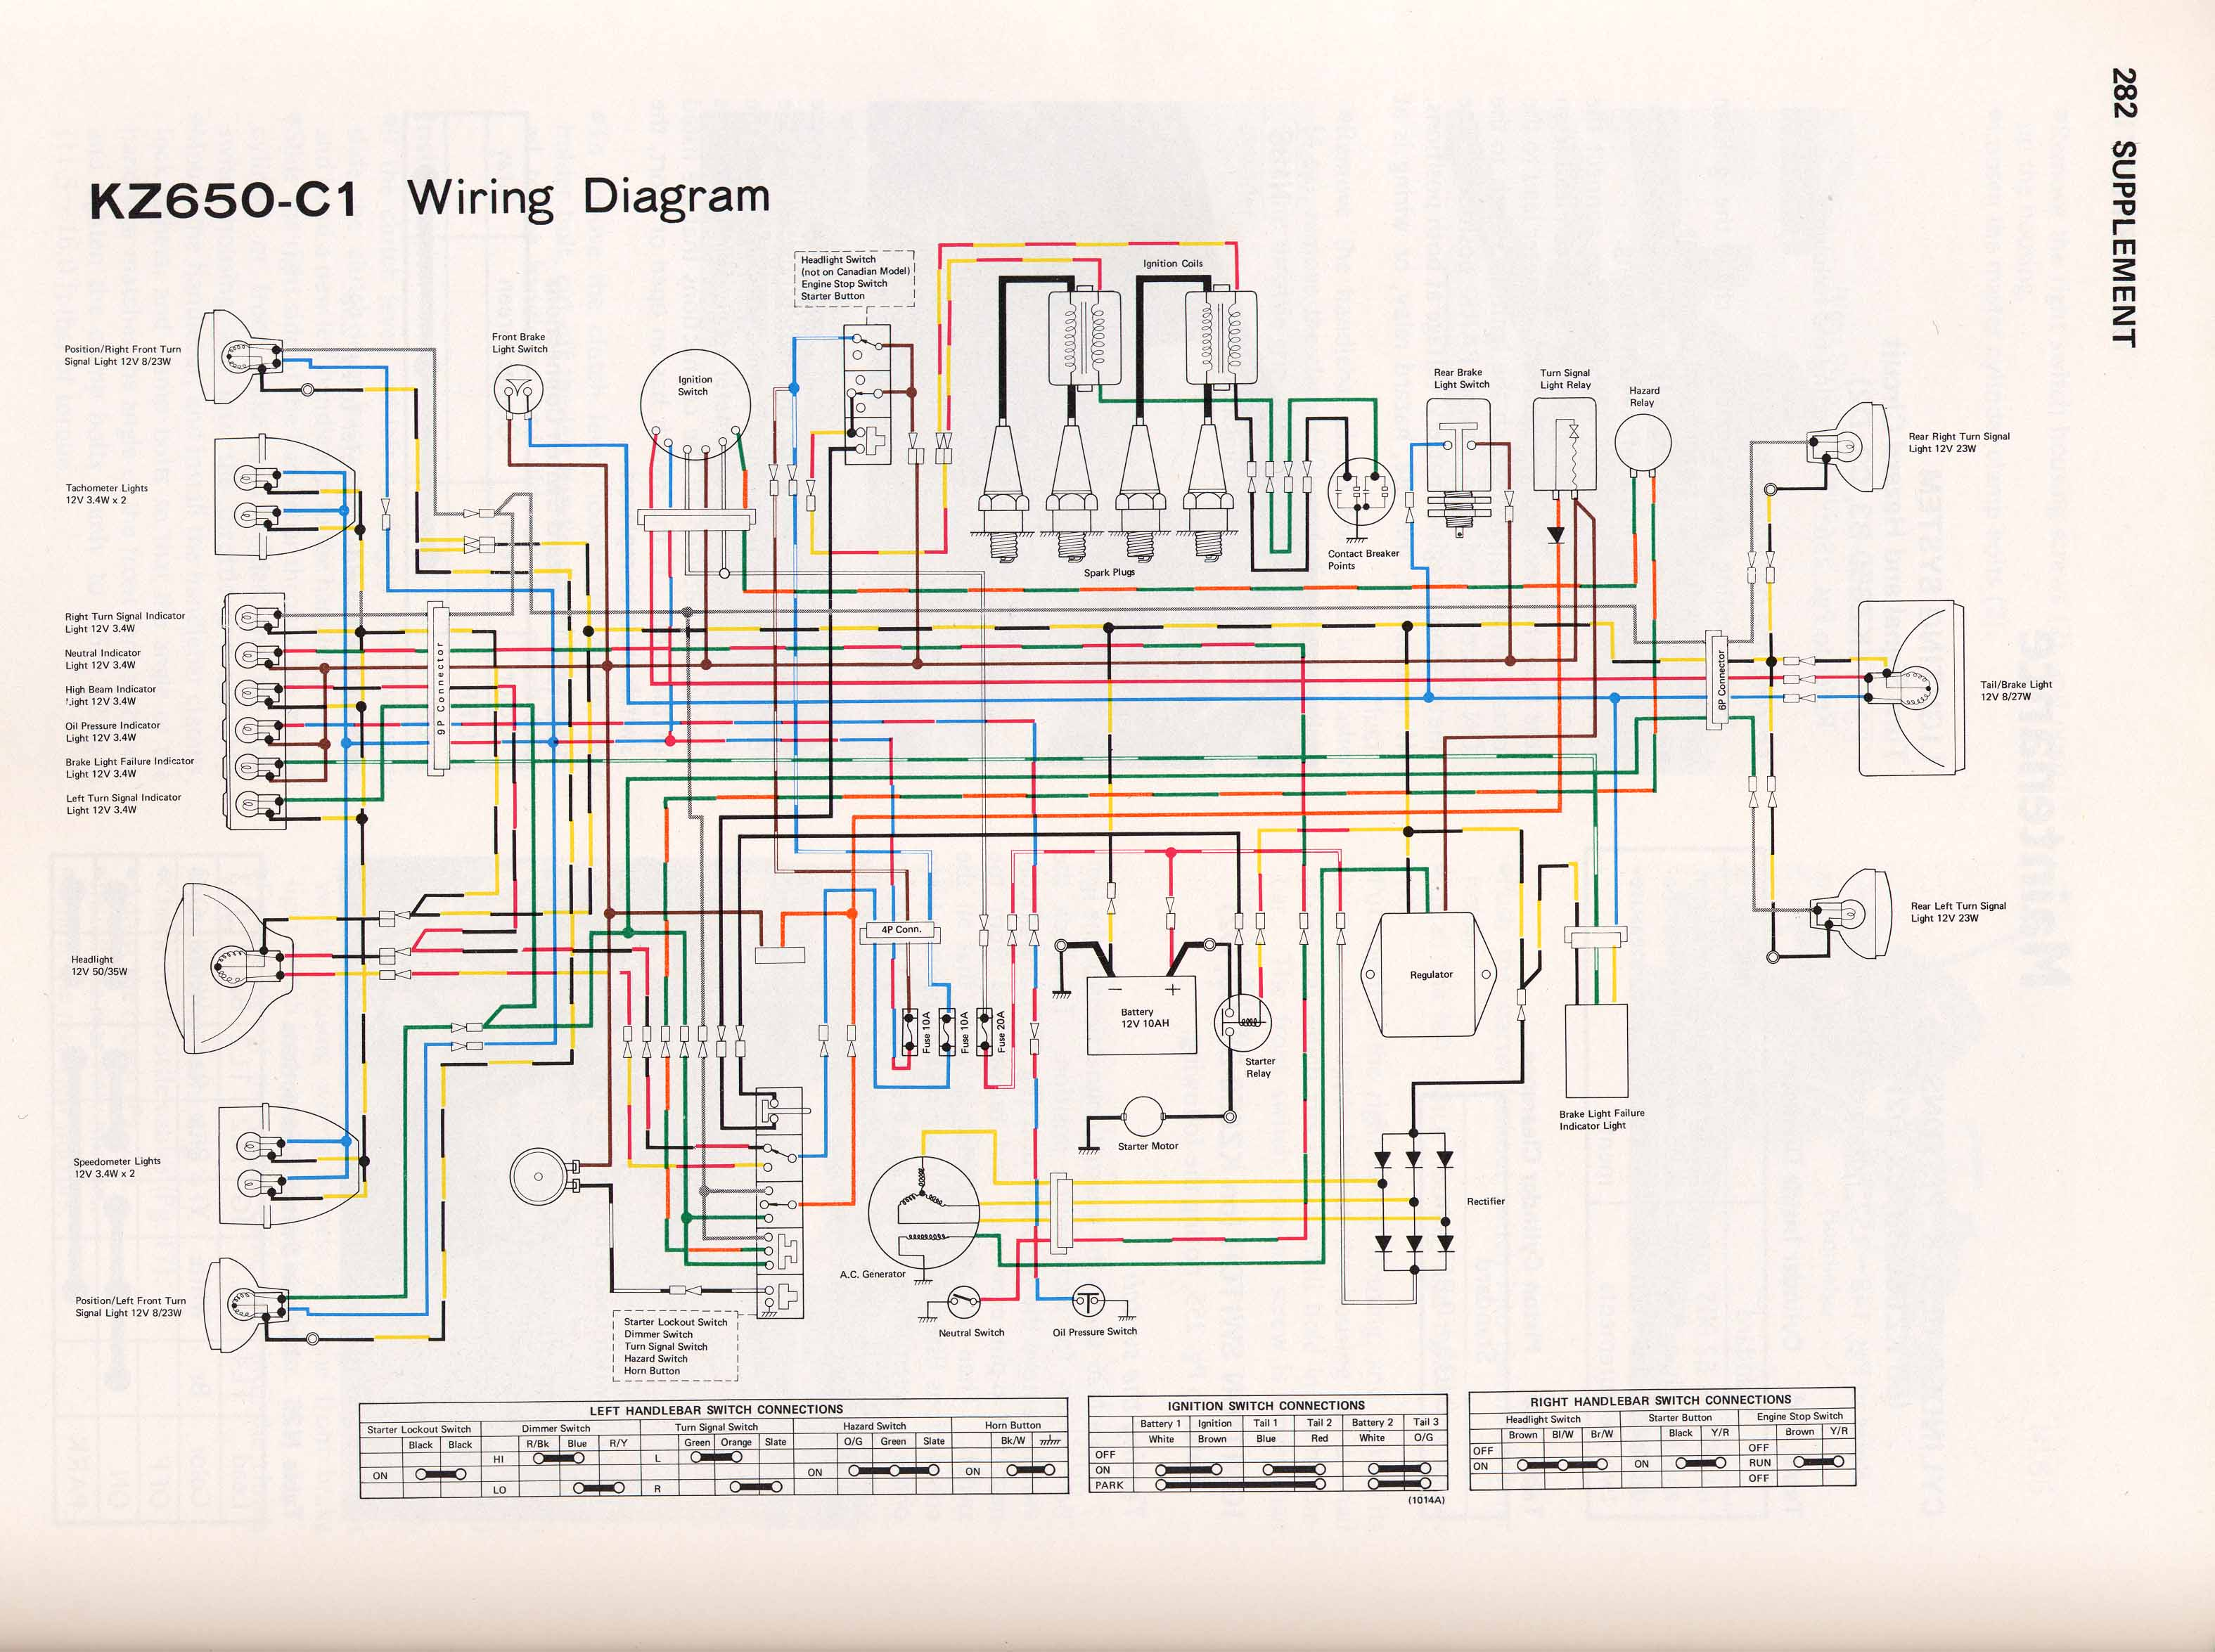 Kawasaki Wiring Diagram Library. Kz650c1. Kawasaki. Free Auto Wiring Diagrams 2006 Kawasaki Klr650 At Scoala.co